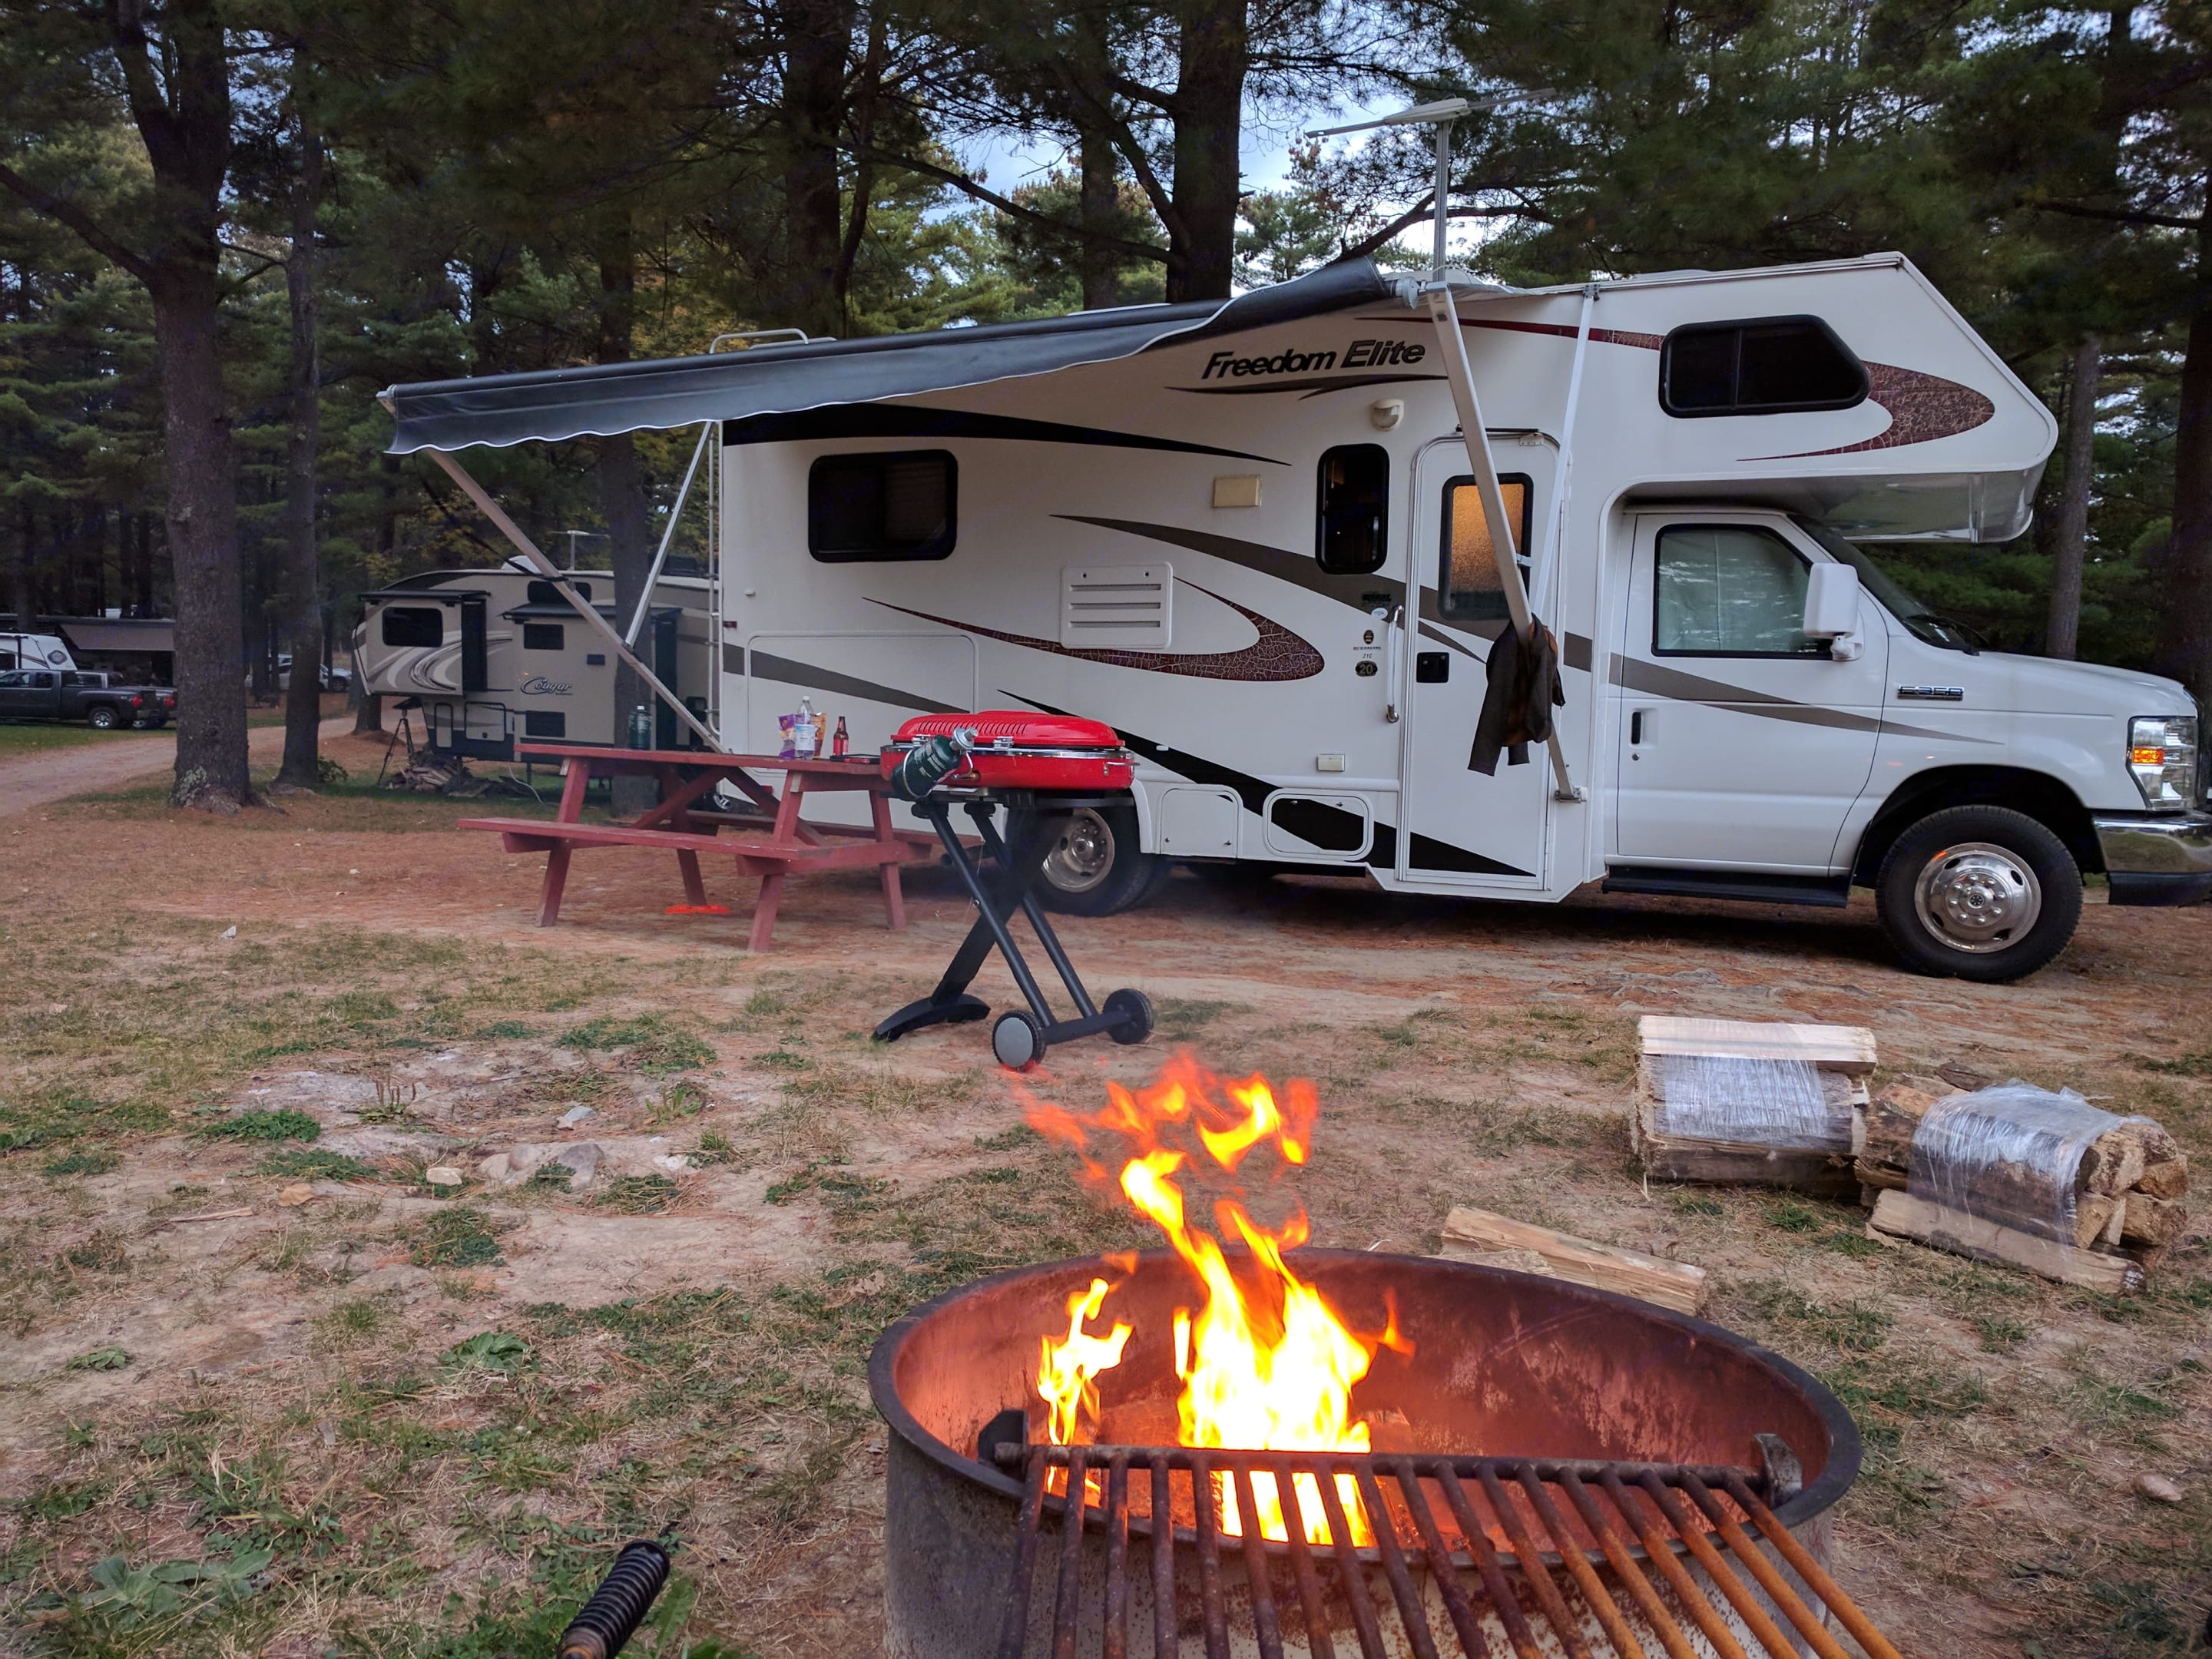 Camping at The Ausable Chasm in Keeseville, NY. Thor Motor Coach Freedom Elite 2011